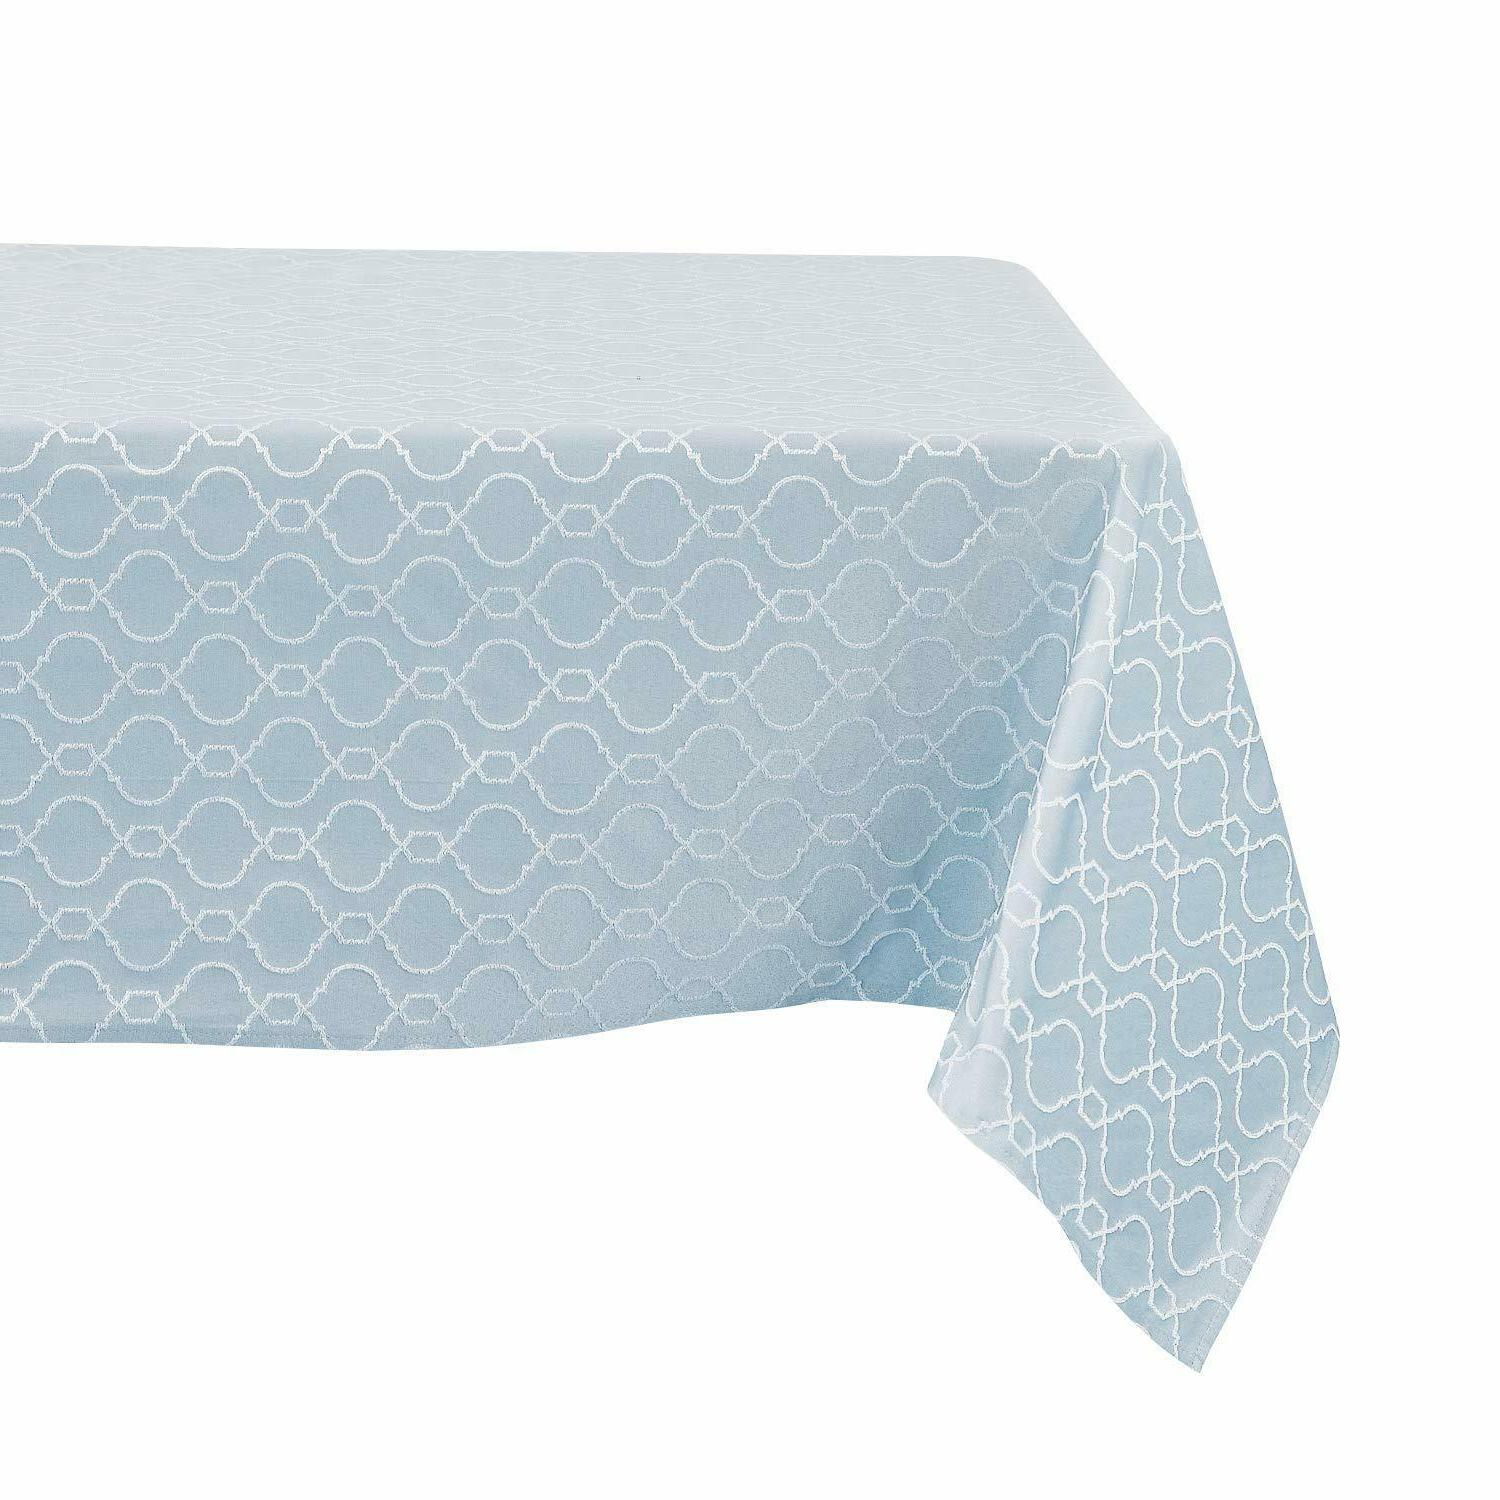 Tablecloths Covers Jacquard Water Polyester